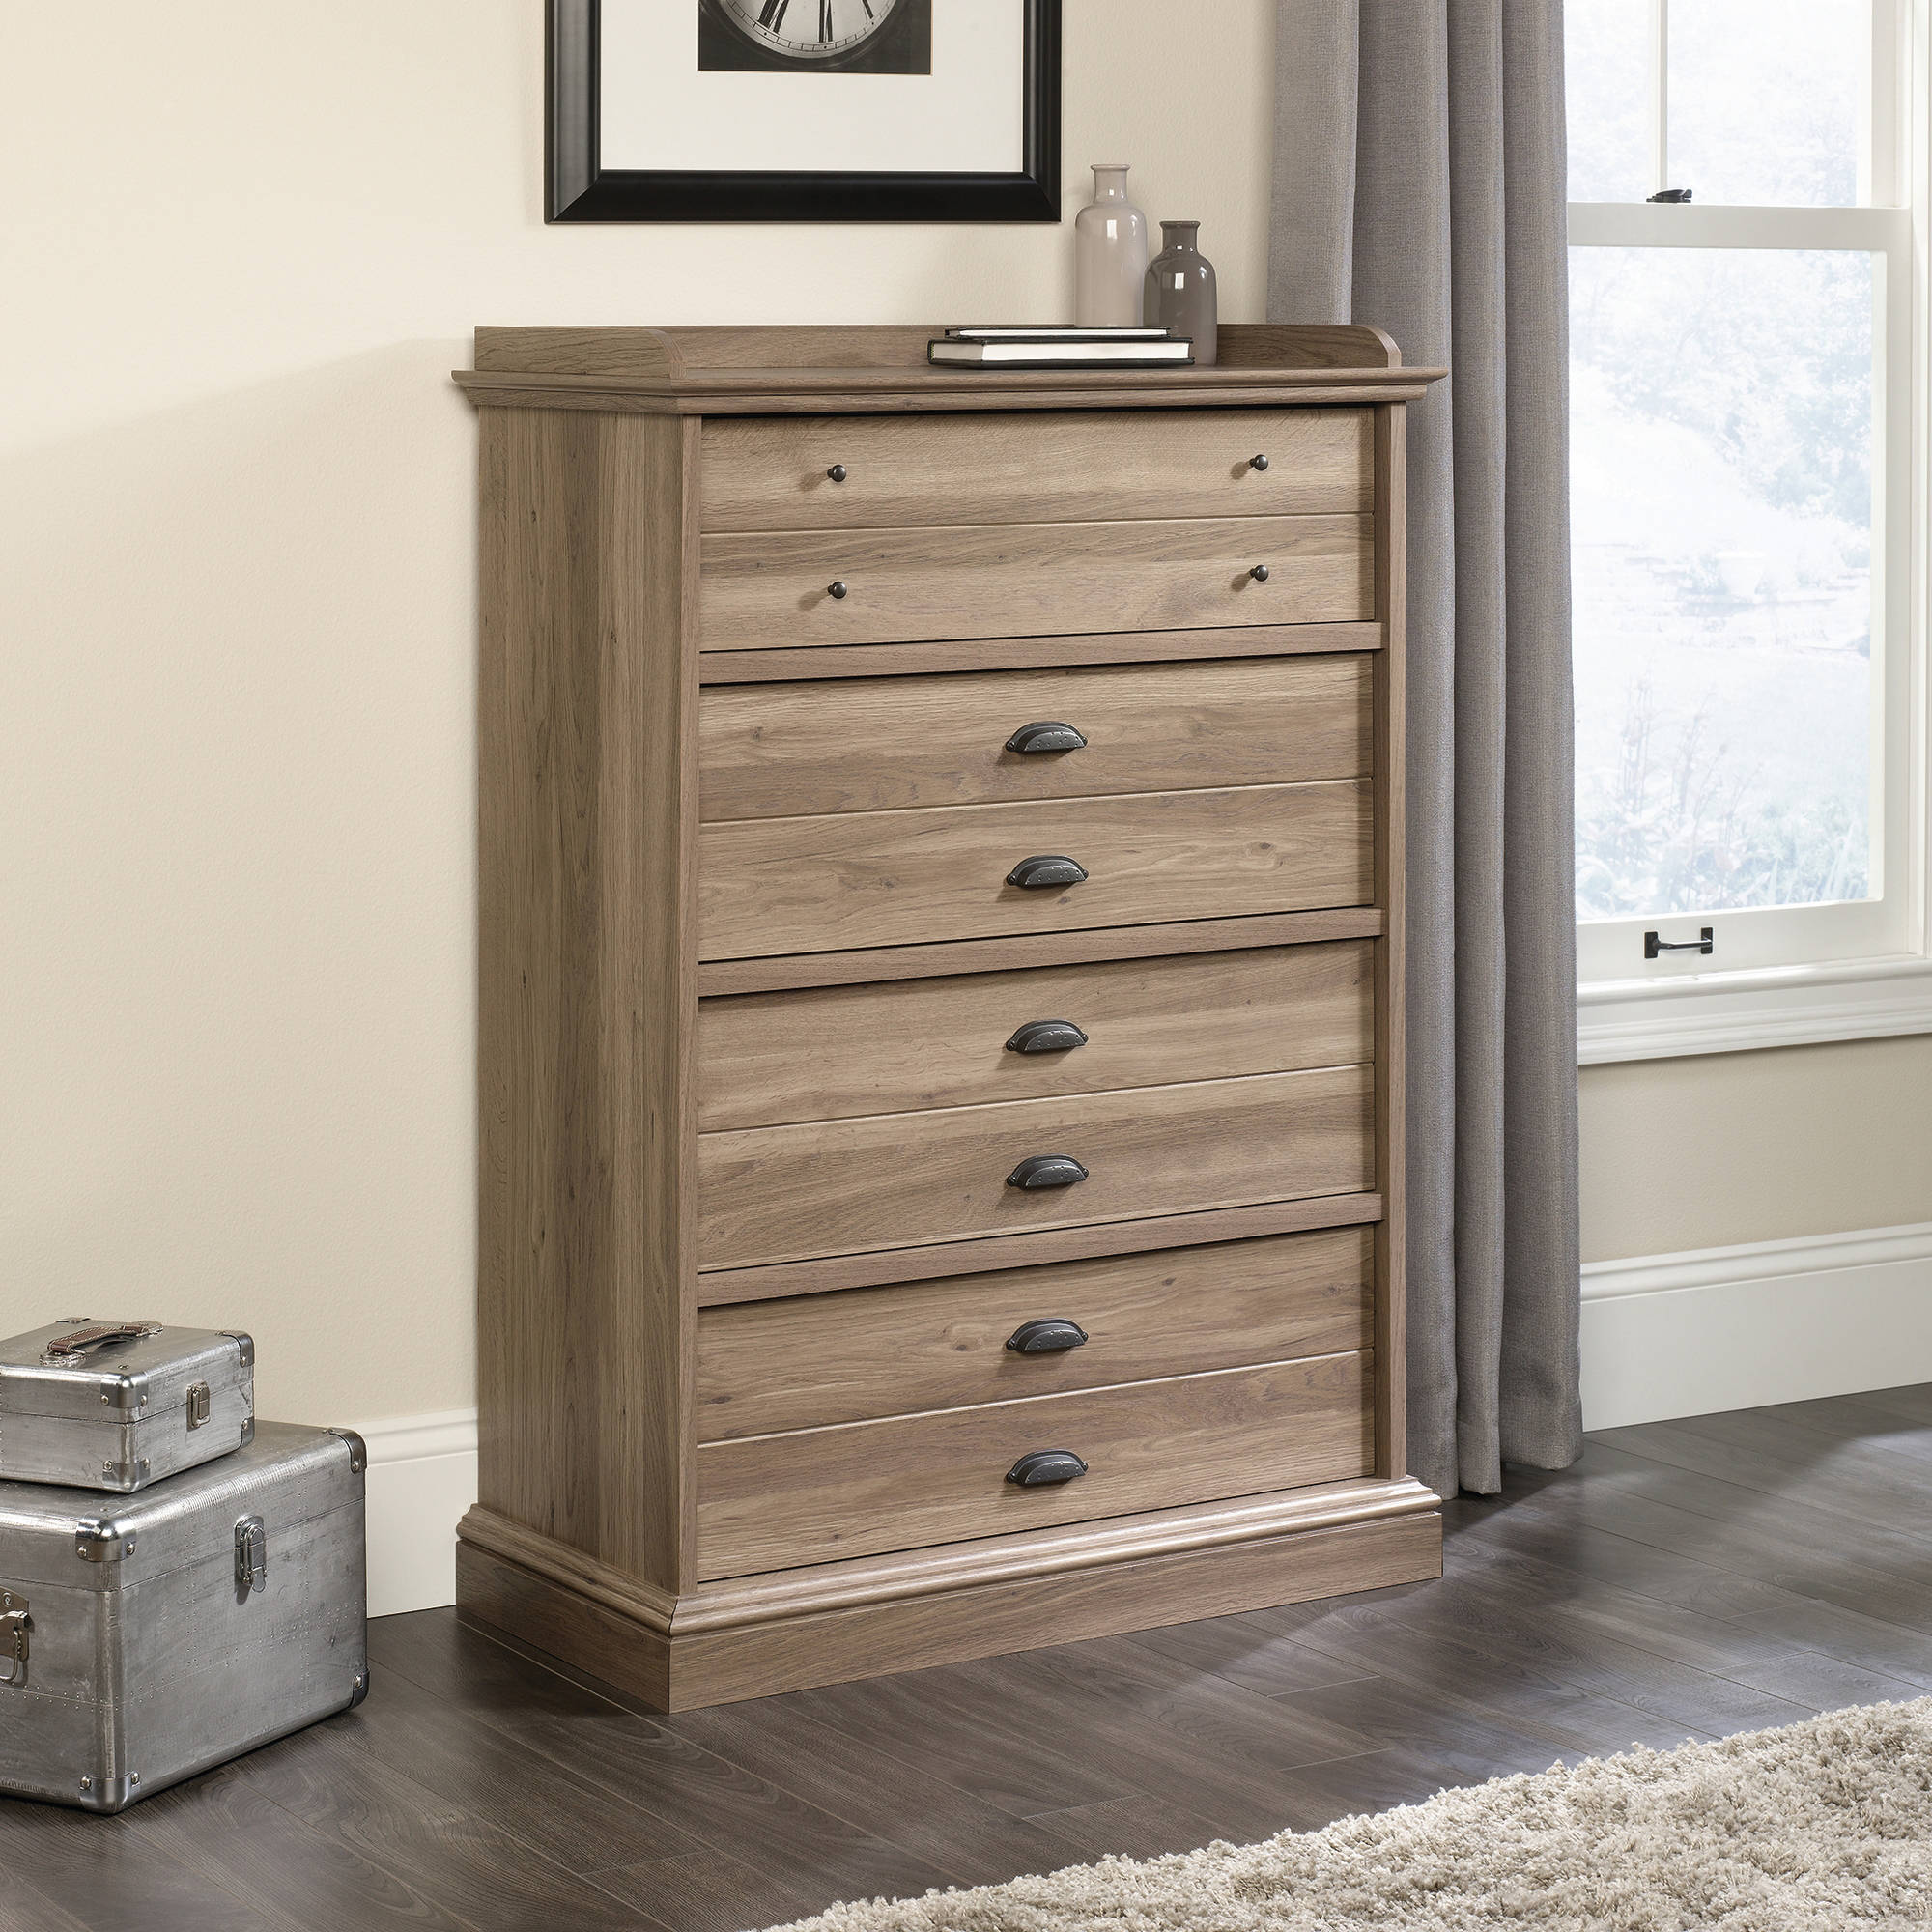 Sauder Barrister Lane 4-Drawer Chest, Salt Oak Finish by Sauder Woodworking